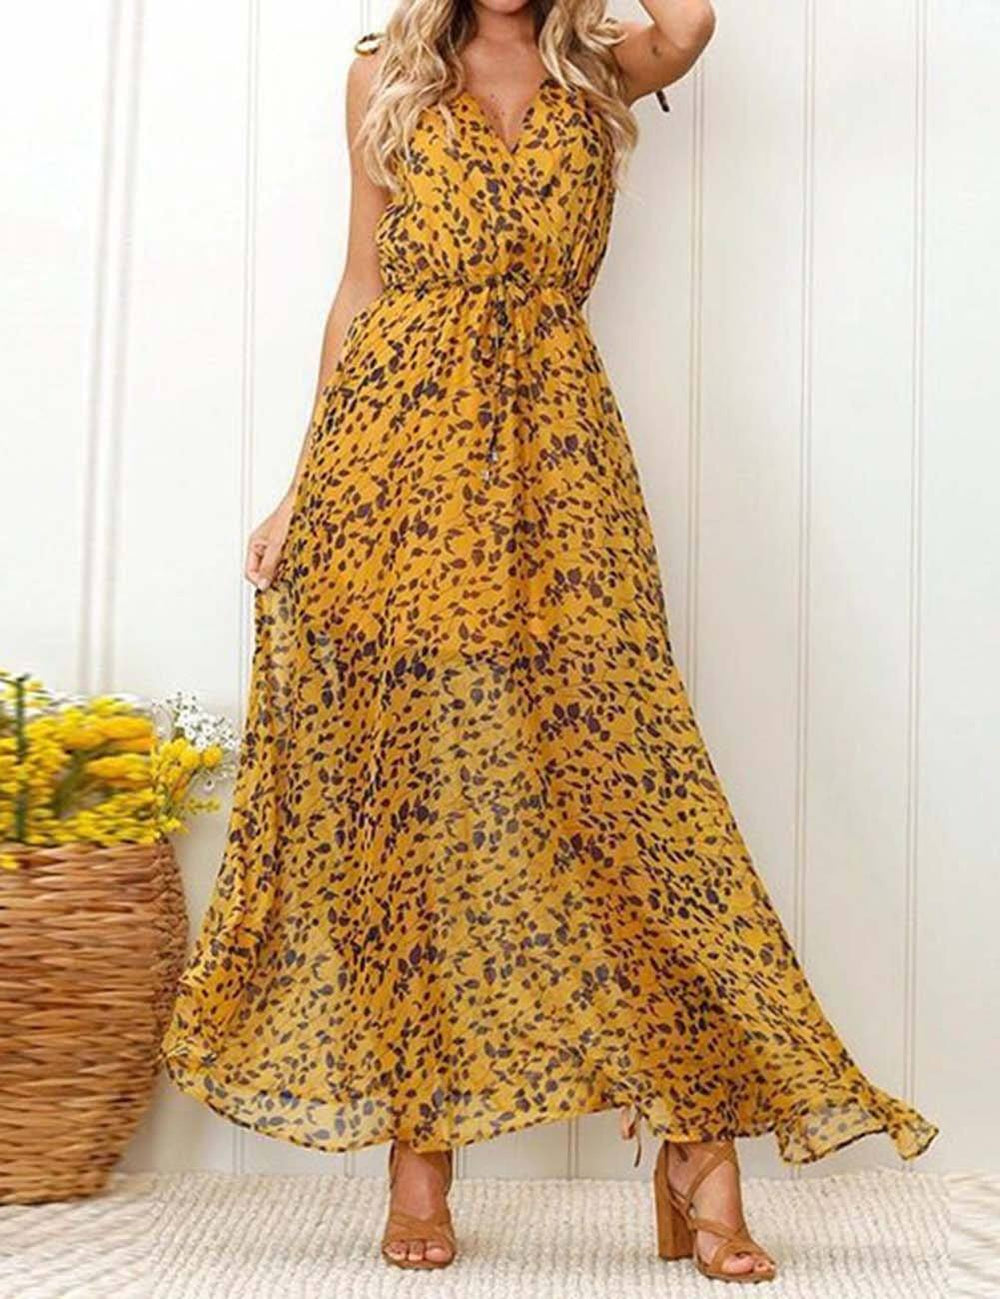 V-Neck Sleeveless Printed Chiffon Cool Maxi Dress - Fancyqube